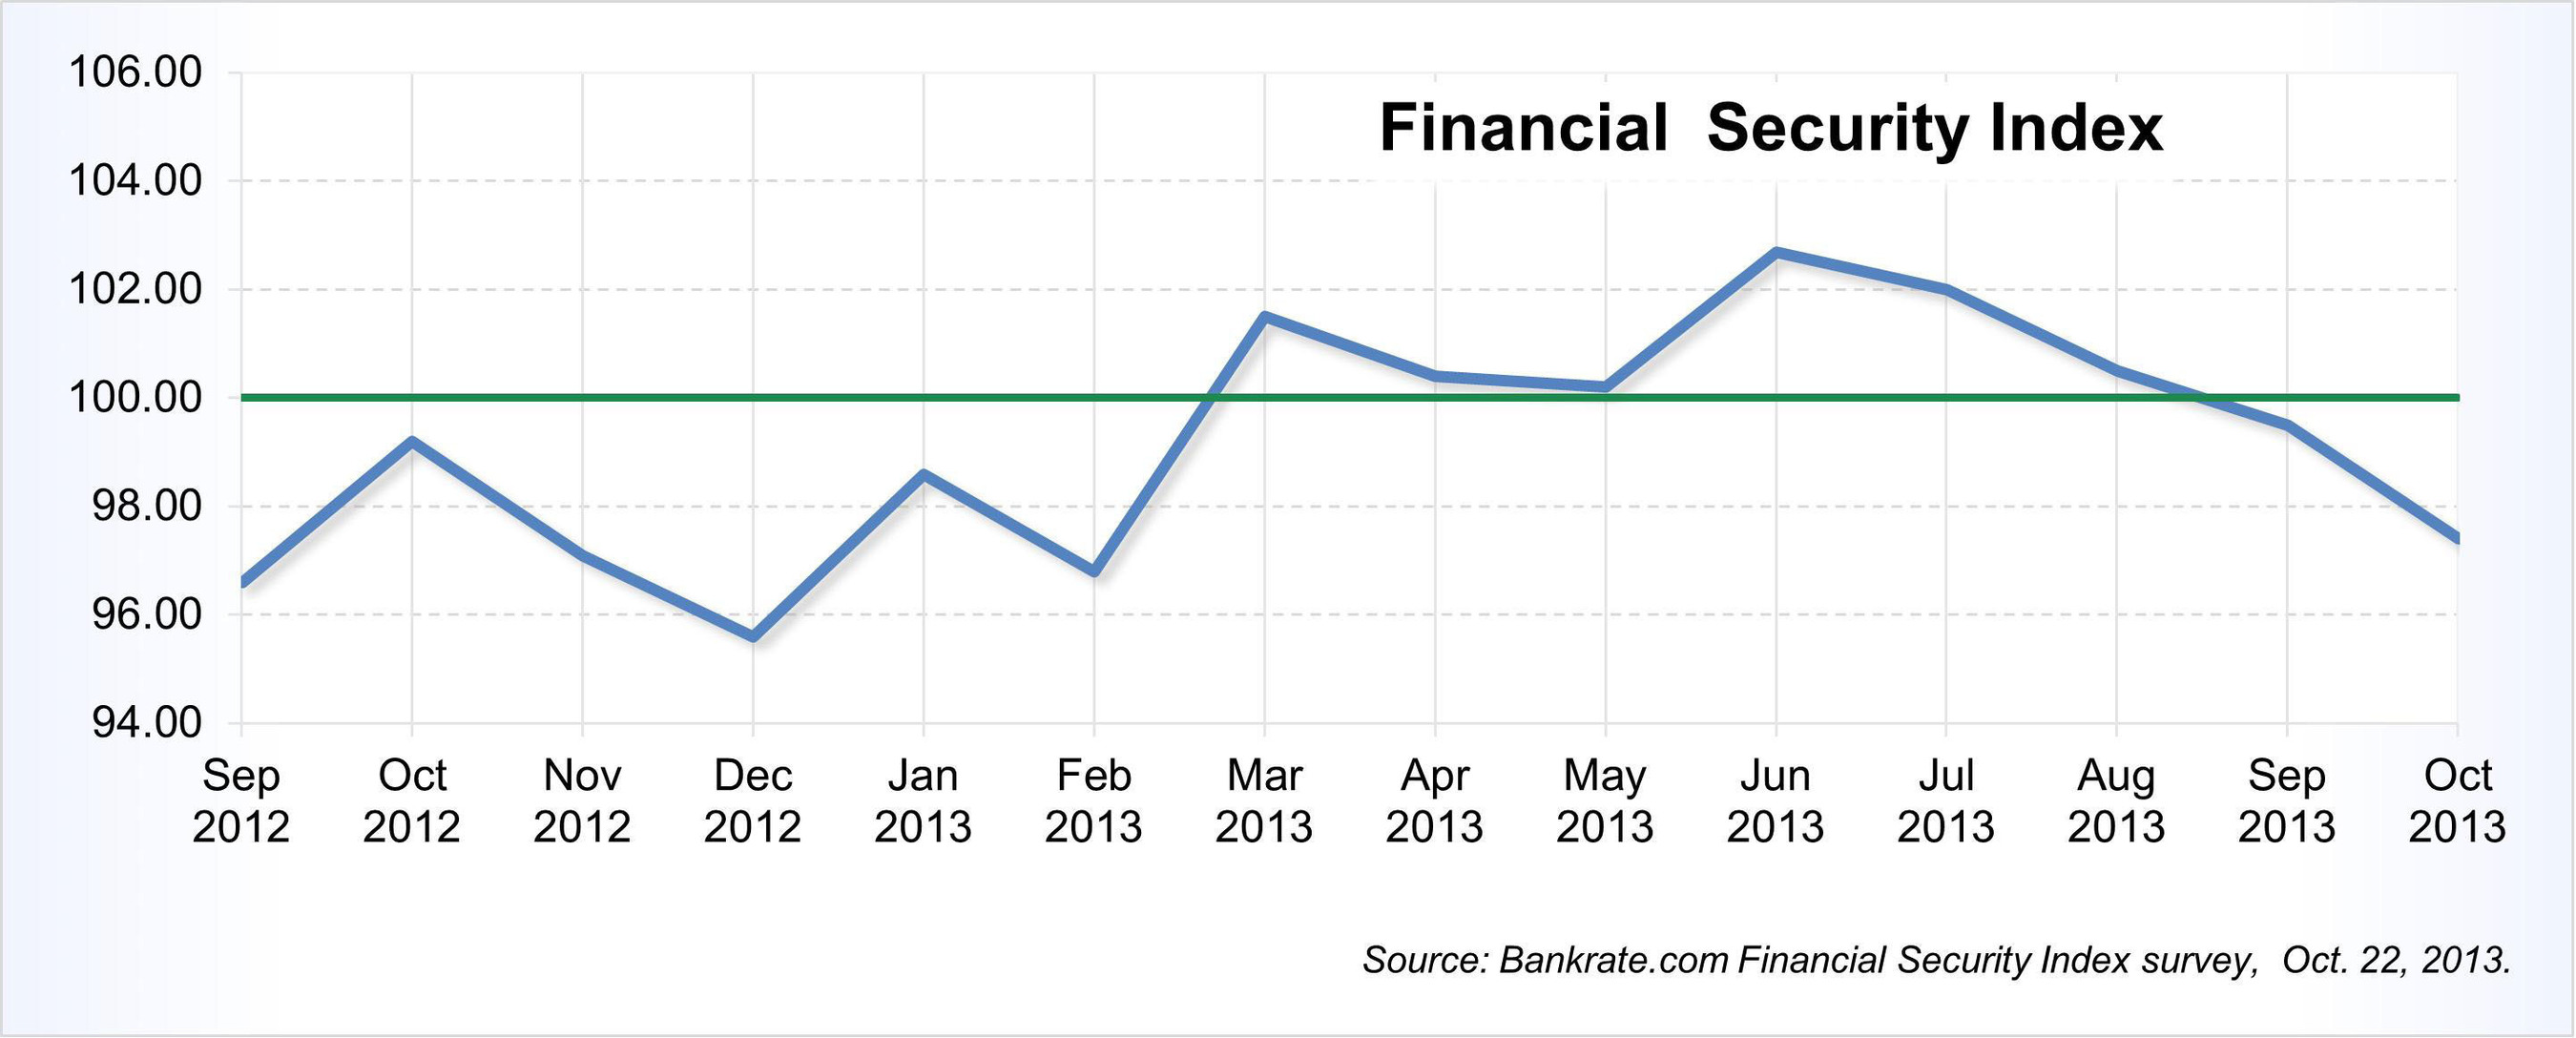 Bankrate.com's Financial Security Index has fallen to its lowest point since February. http://www.bankrate.com/finance/consumer-index/financial-security-charts-1013.aspx.  (PRNewsFoto/Bankrate, Inc.)